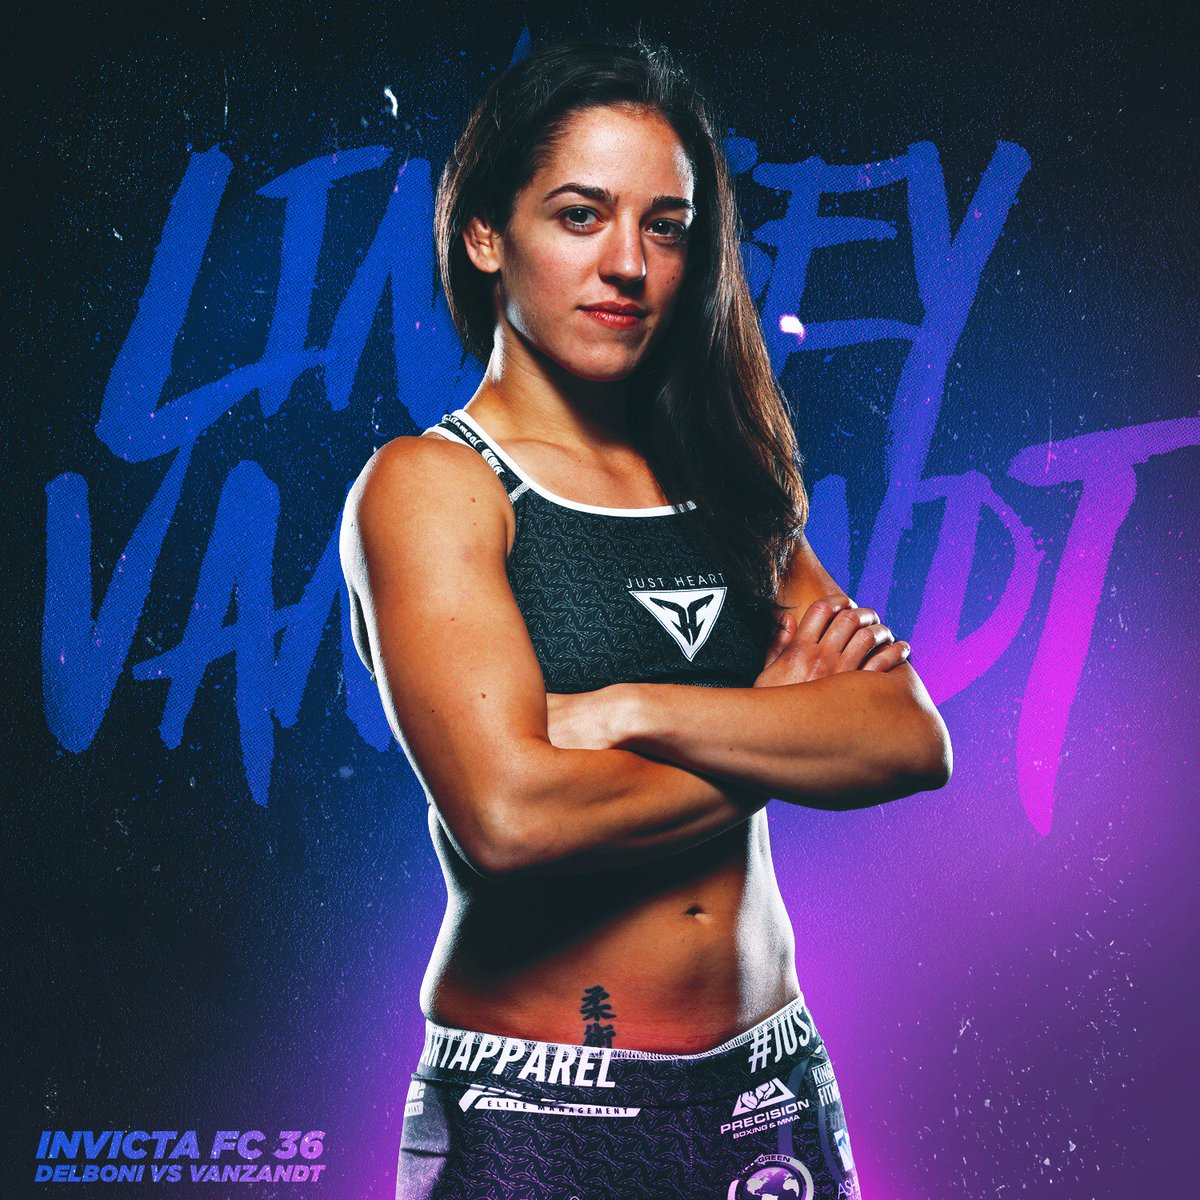 New York's @Damsel_MMA makes her return to the Invicta cage when she takes on Brazil's Jéssica Delboni this August 9th at #InvictaFC36!